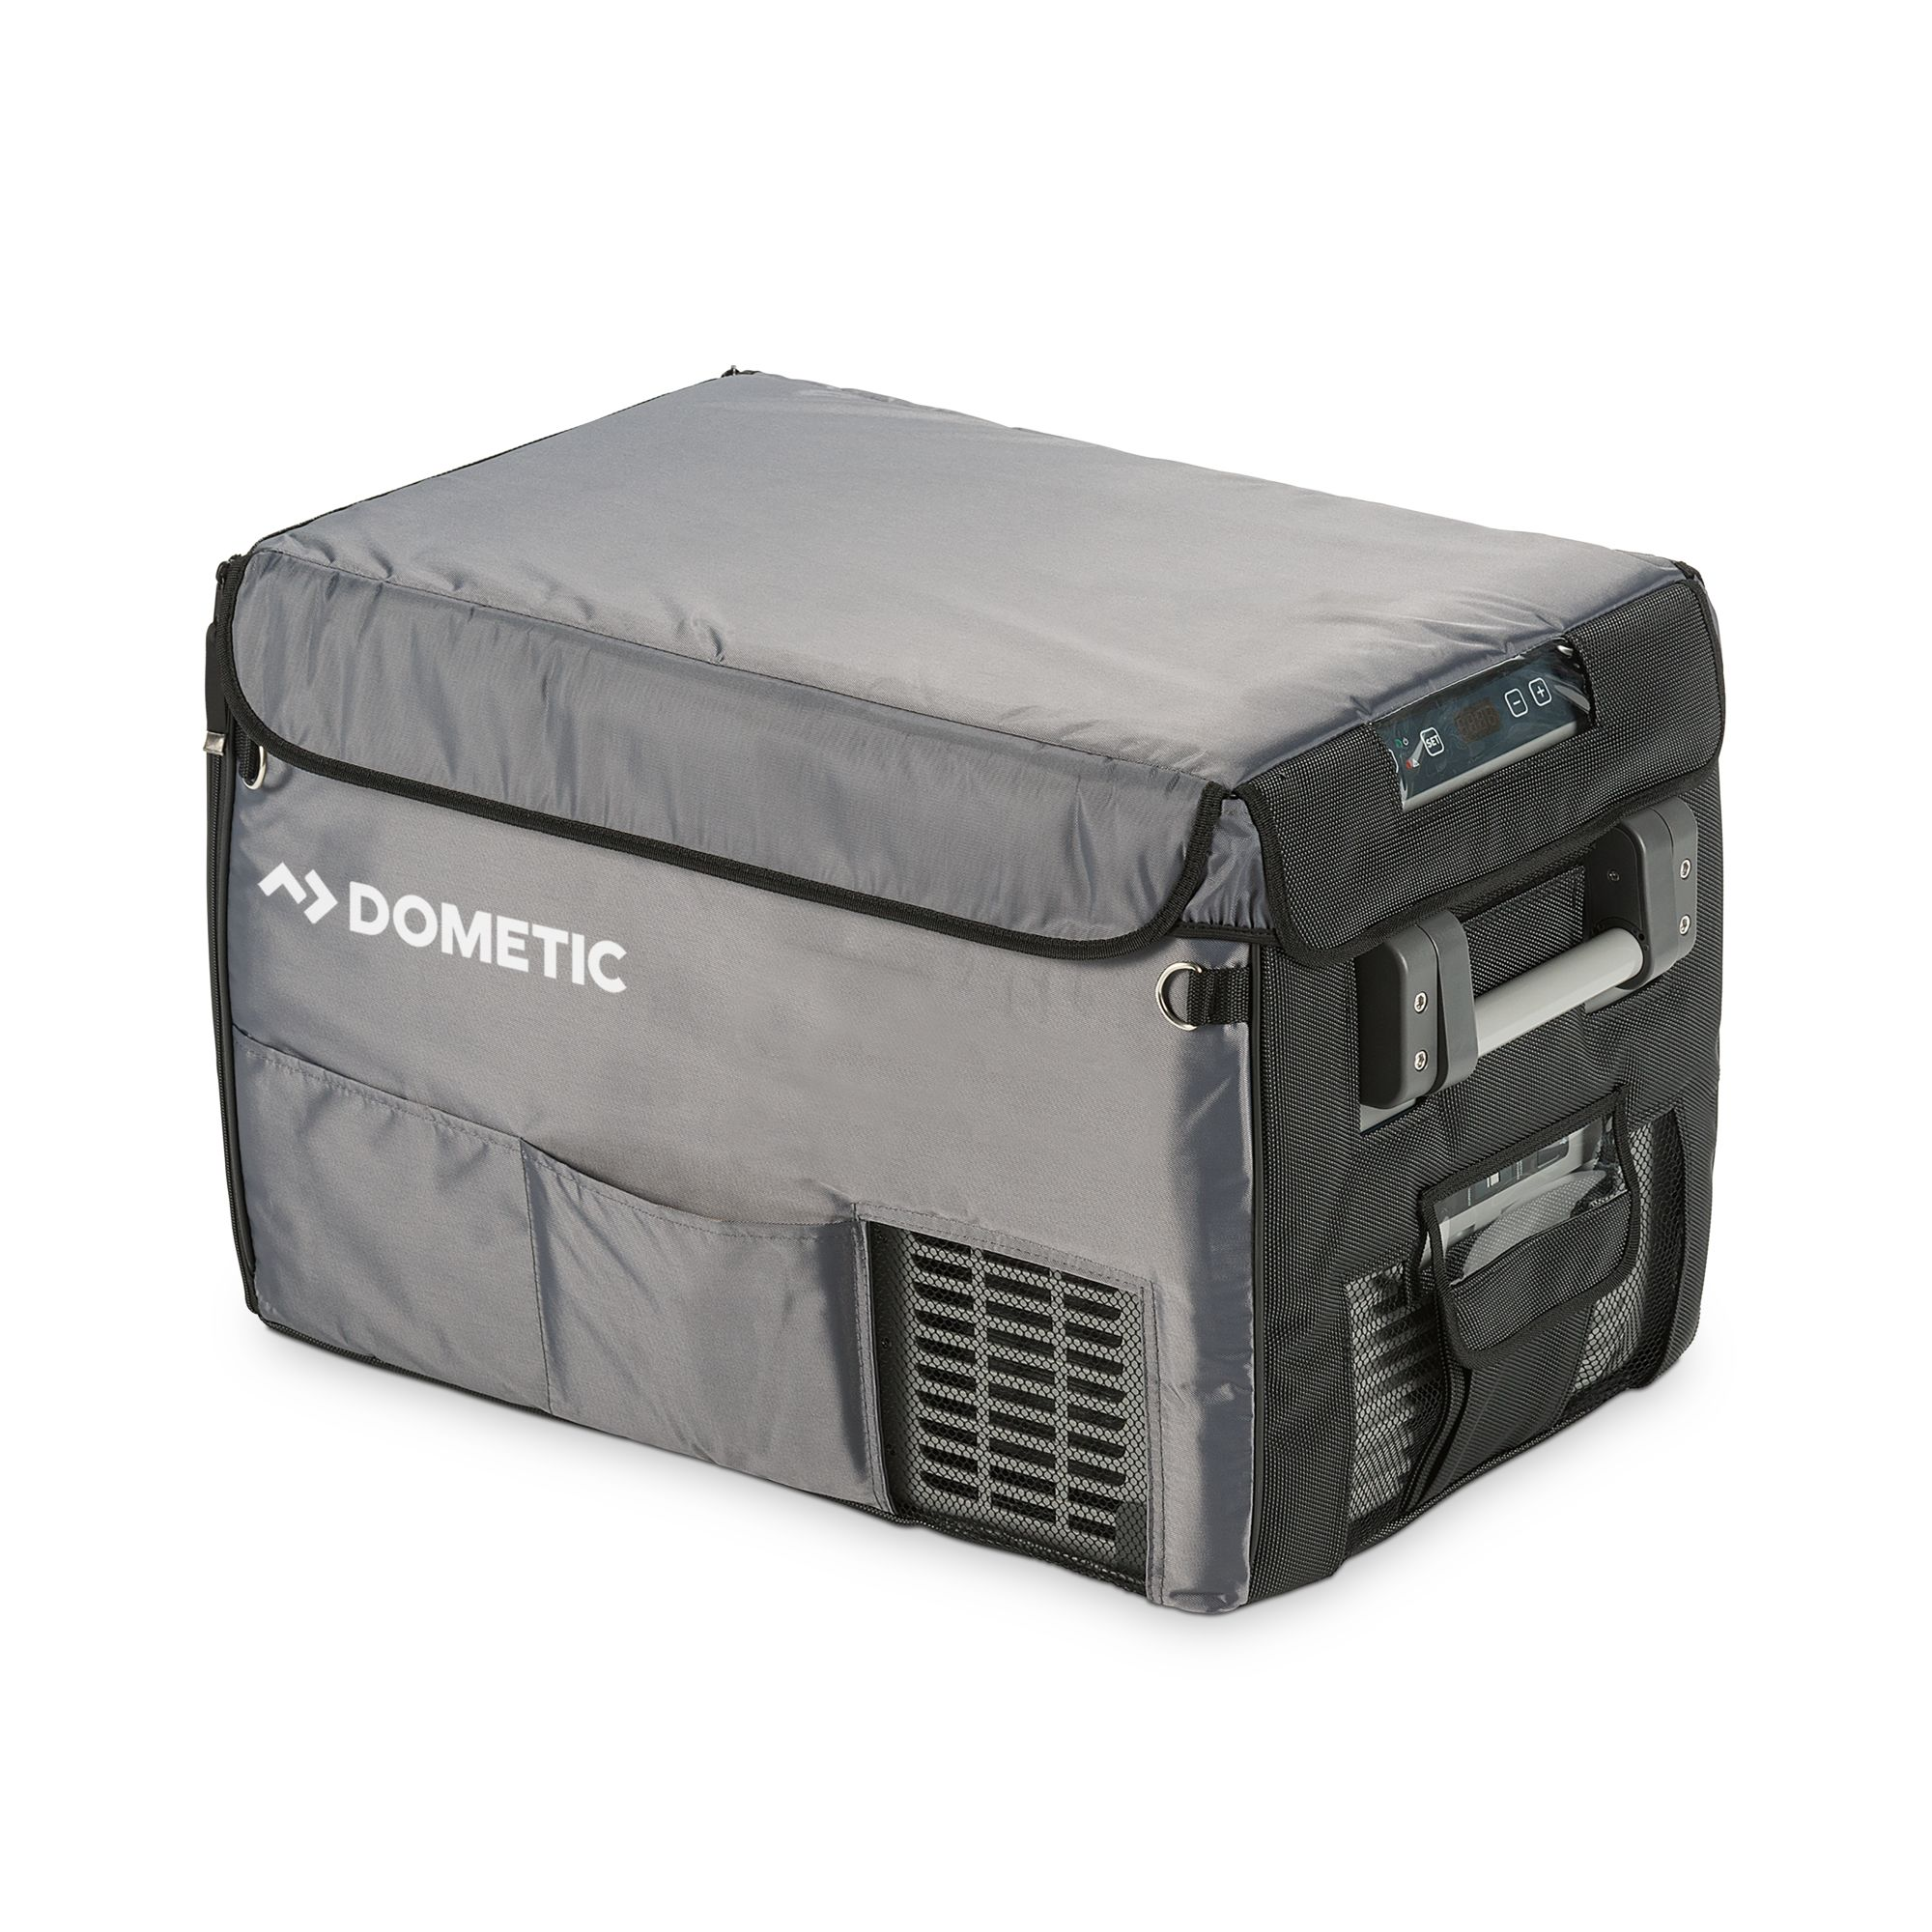 Dometic Insulated Covers